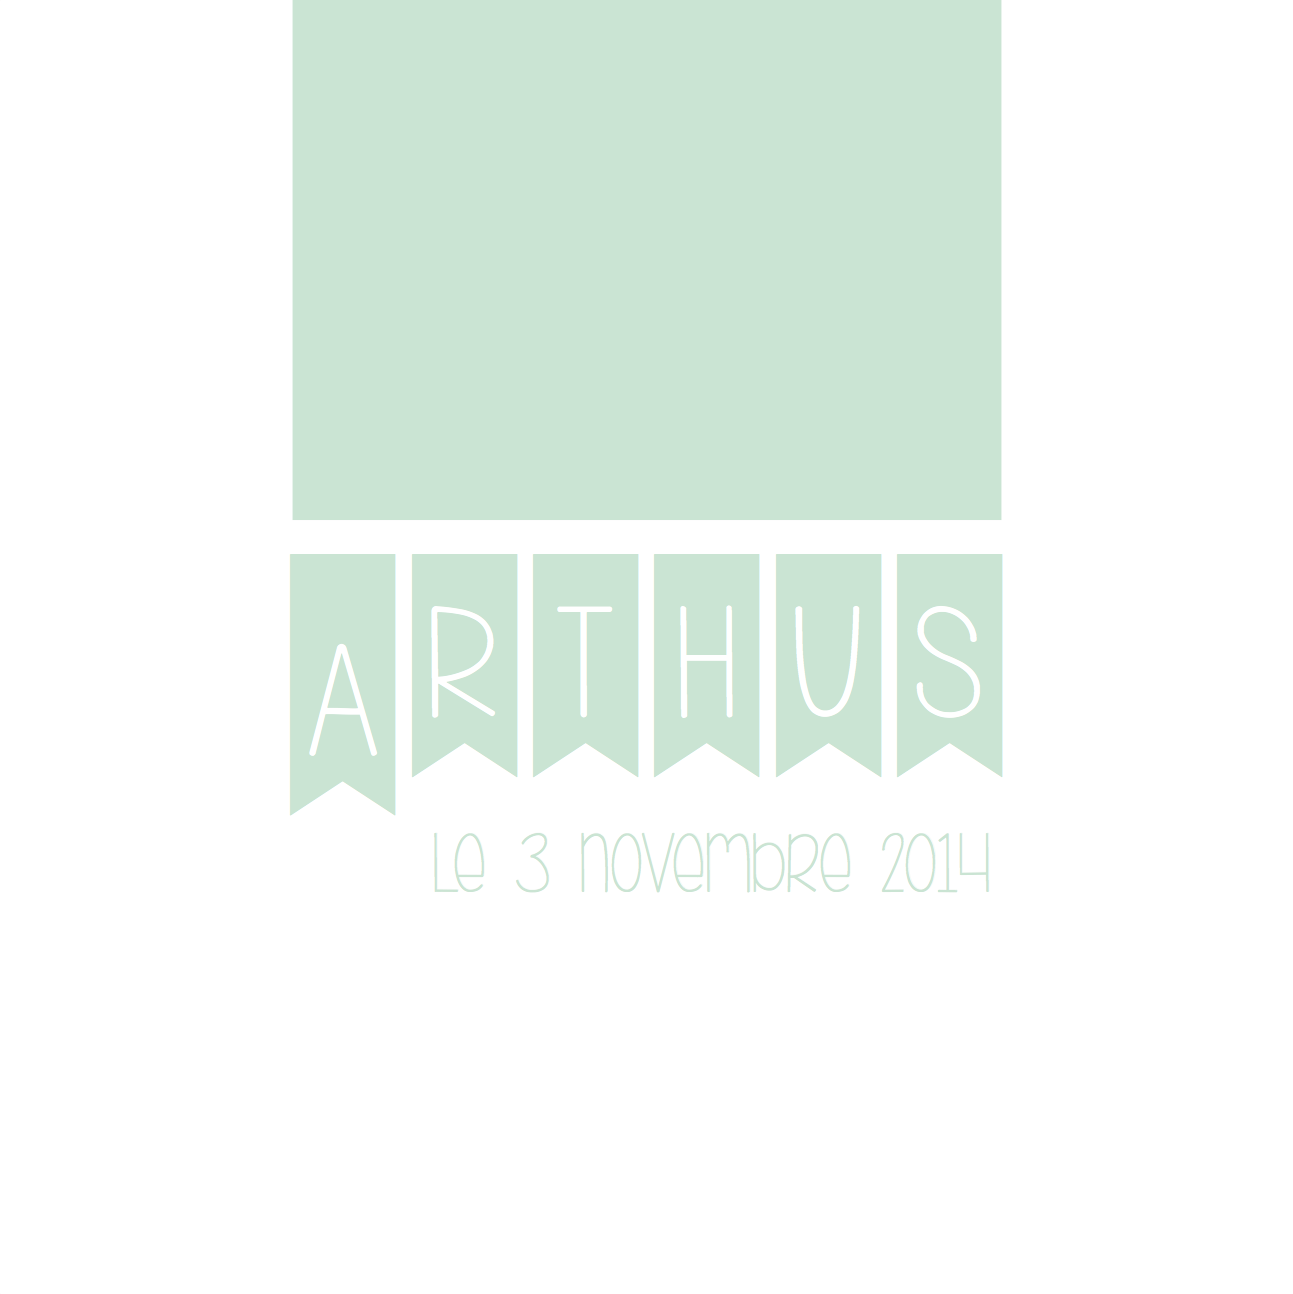 faire-parts arthus recto 1